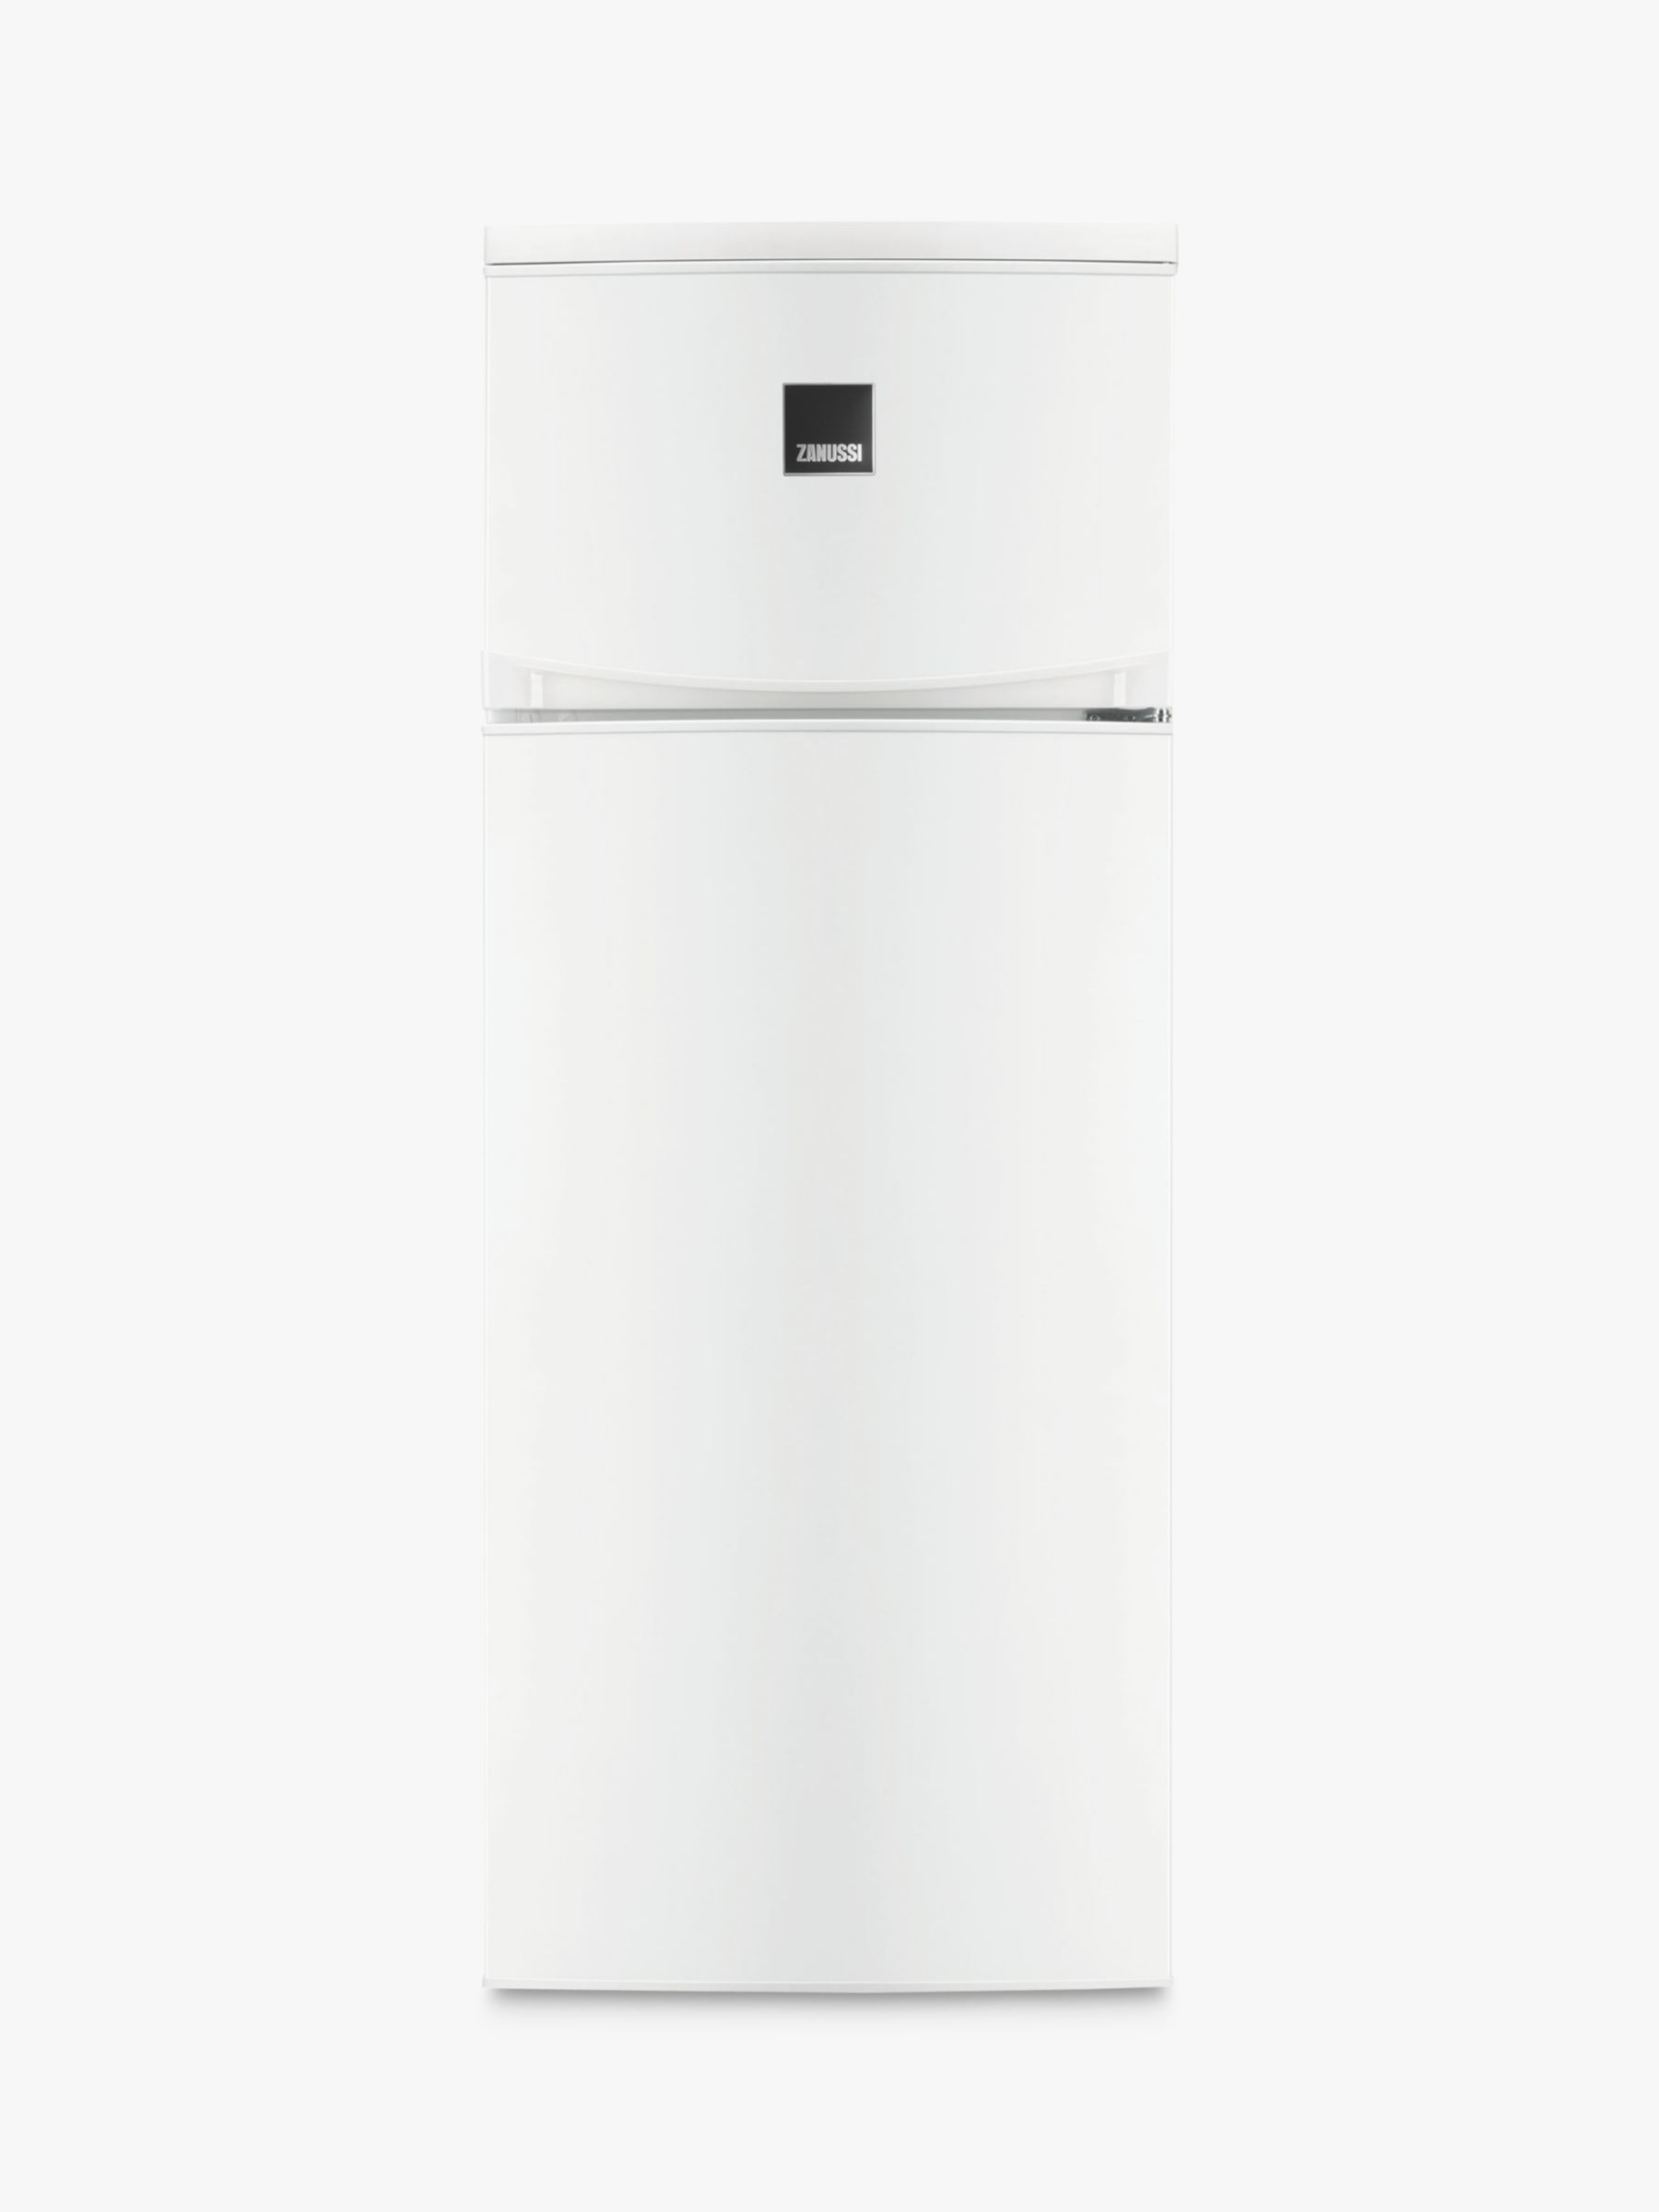 Zanussi Zanussi ZRT27102WV Freestanding Fridge Freezer, A+ Energy Rating, 55cm Wide, White